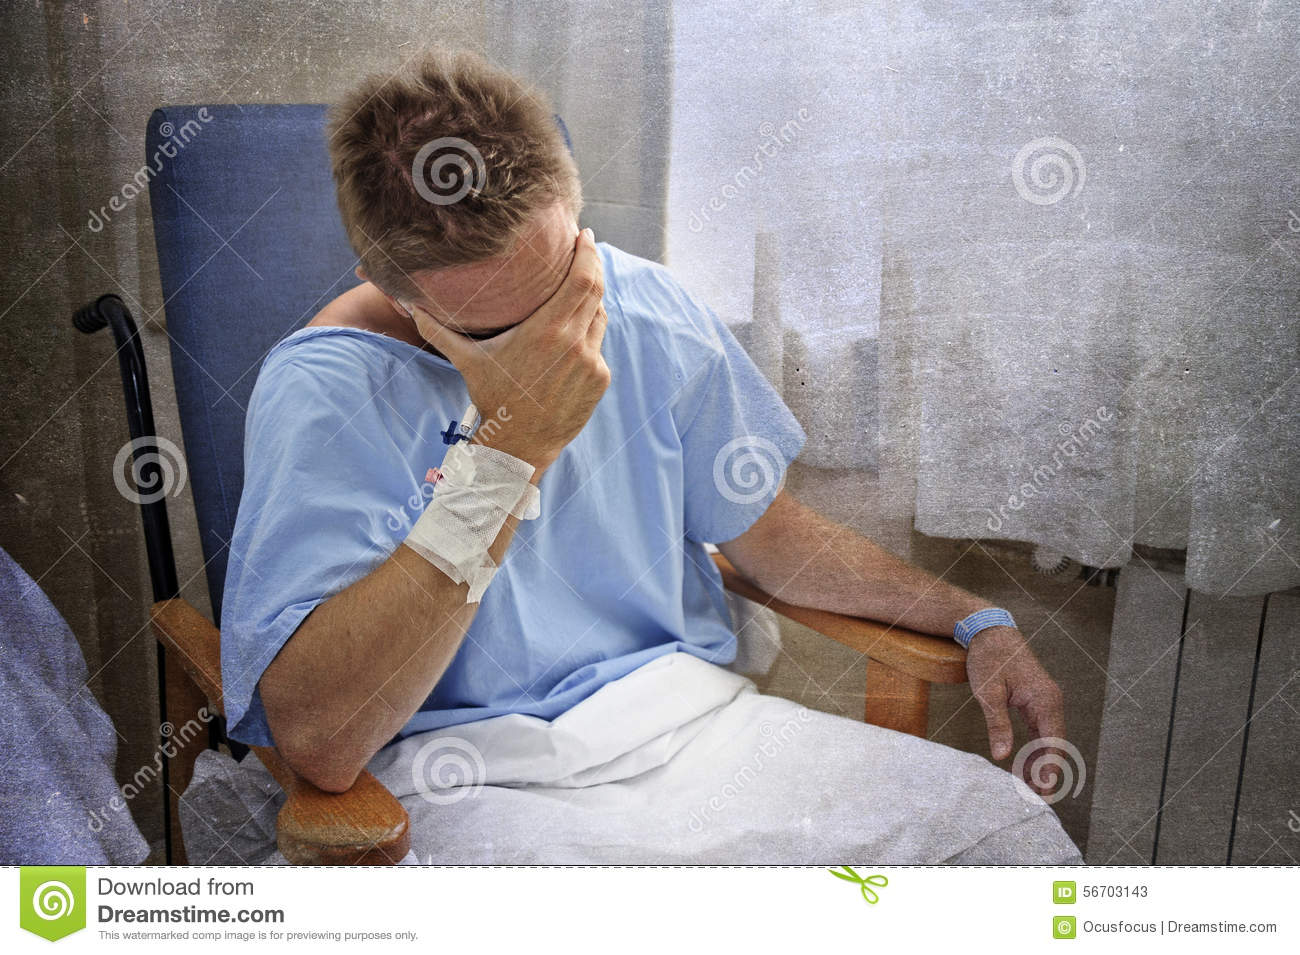 Young injured man crying in hospital room sitting alone crying in pain worried for his health condition